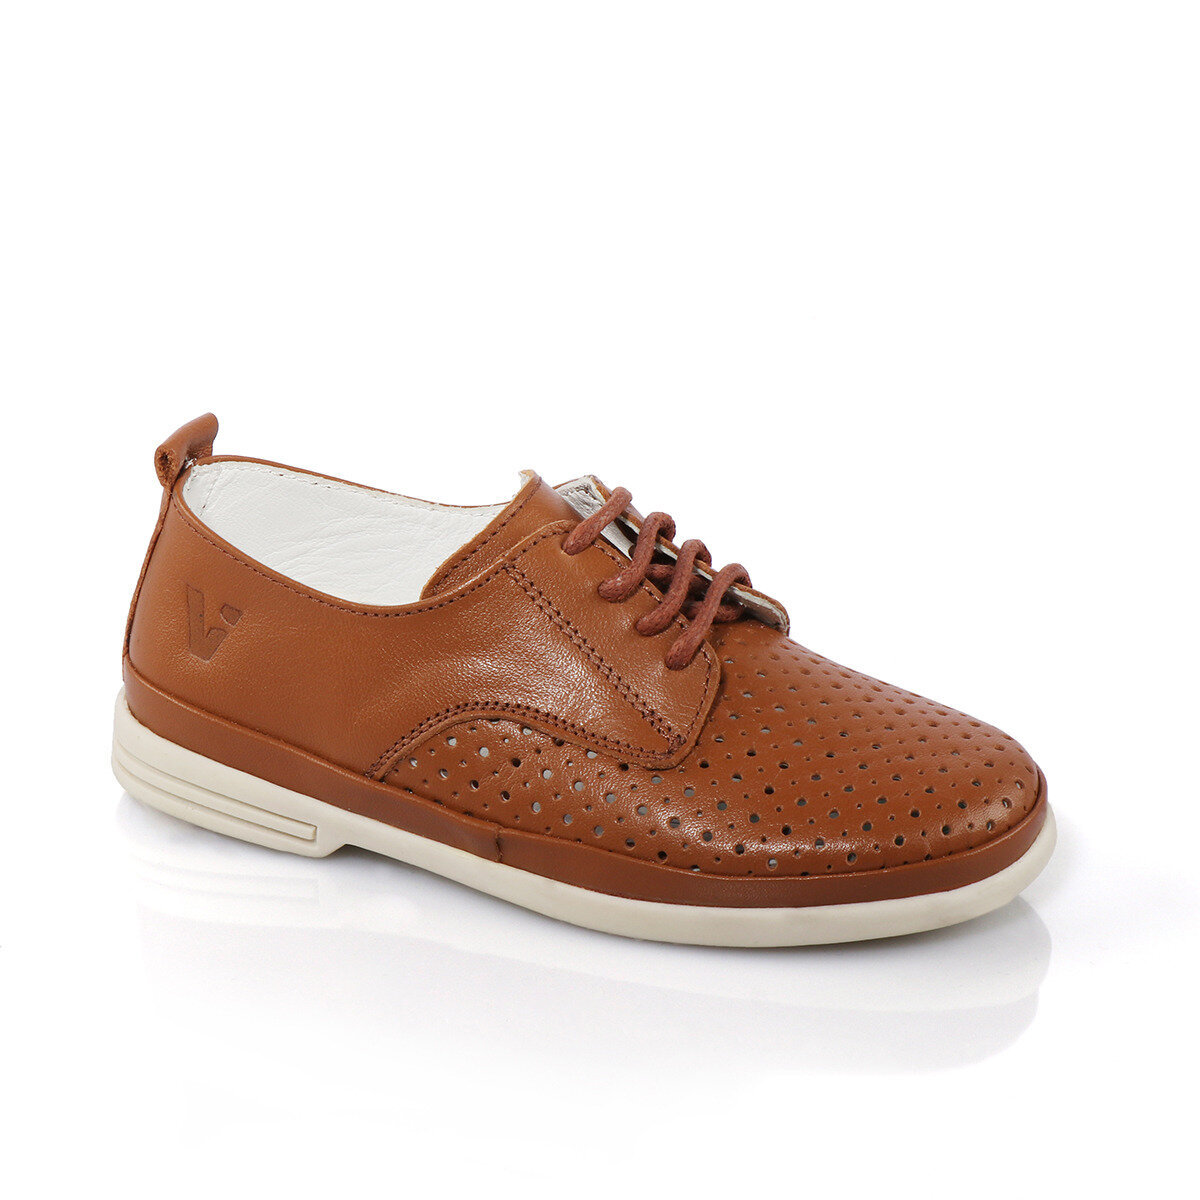 FLO 908.18Y.388 F LEATHER Tan Male Child Oxford Shoes VICCO